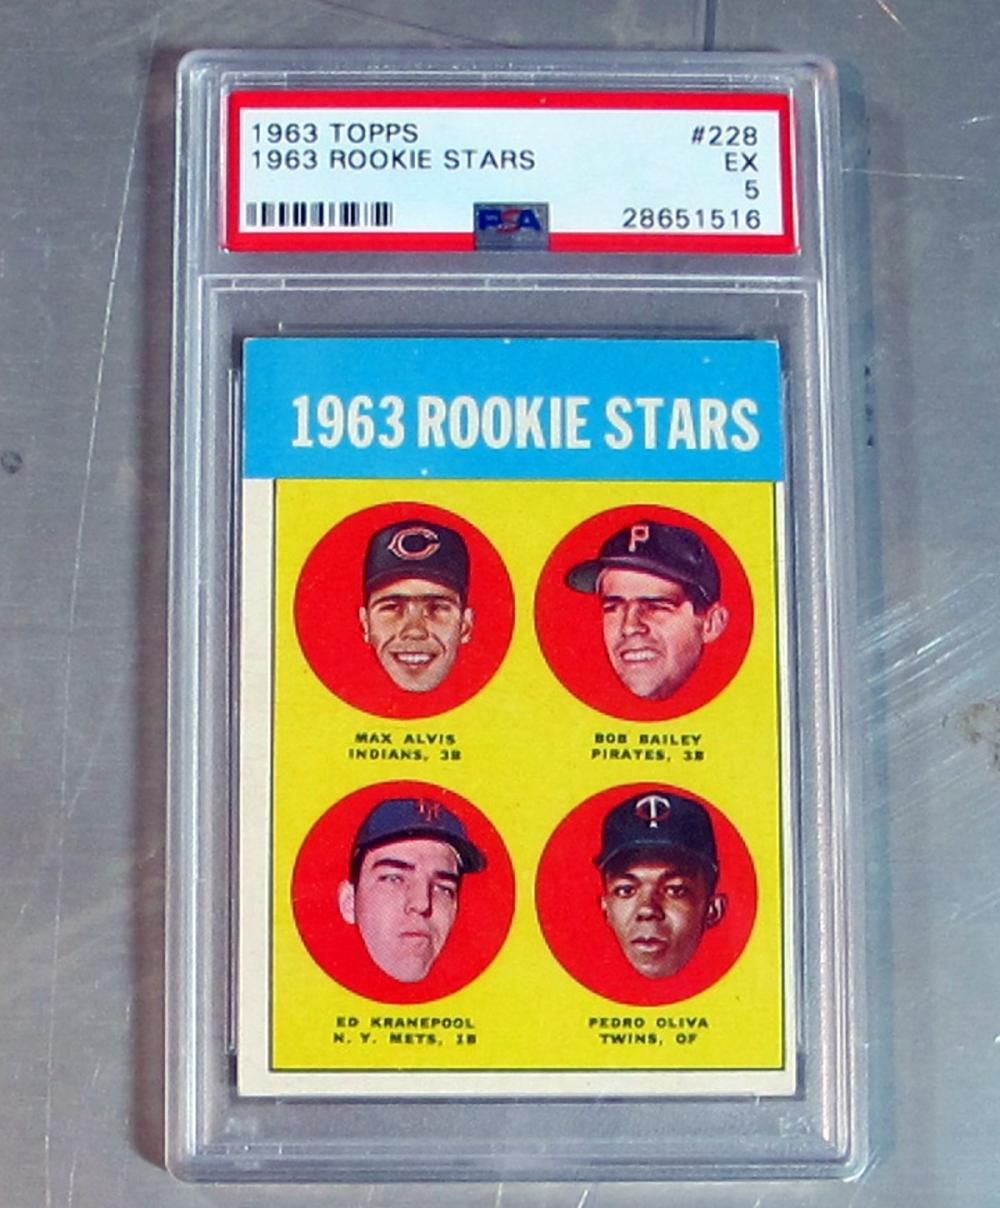 1963 TOPPS BASEBALL CARD 228 OLIVA KRANEPOOL ALVIS BAILEY RC PSA GRADED 5 EX